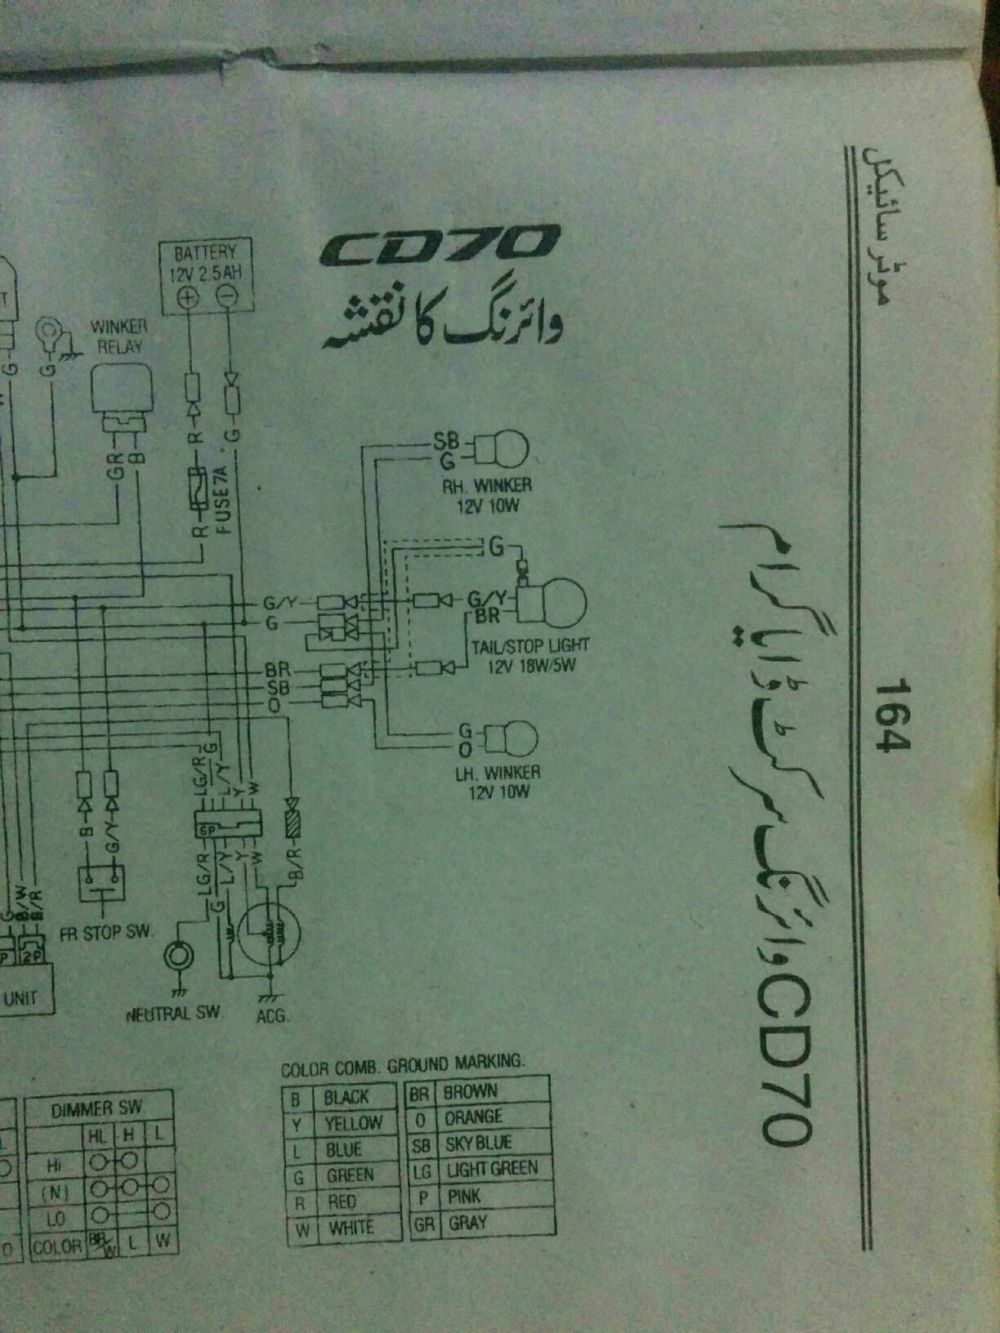 medium resolution of wiring diagram of honda motorcycle cd 70 wiring diagram sheet honda cd 70 motorcycle wiring diagram pdf honda cdi 70 wiring diagram